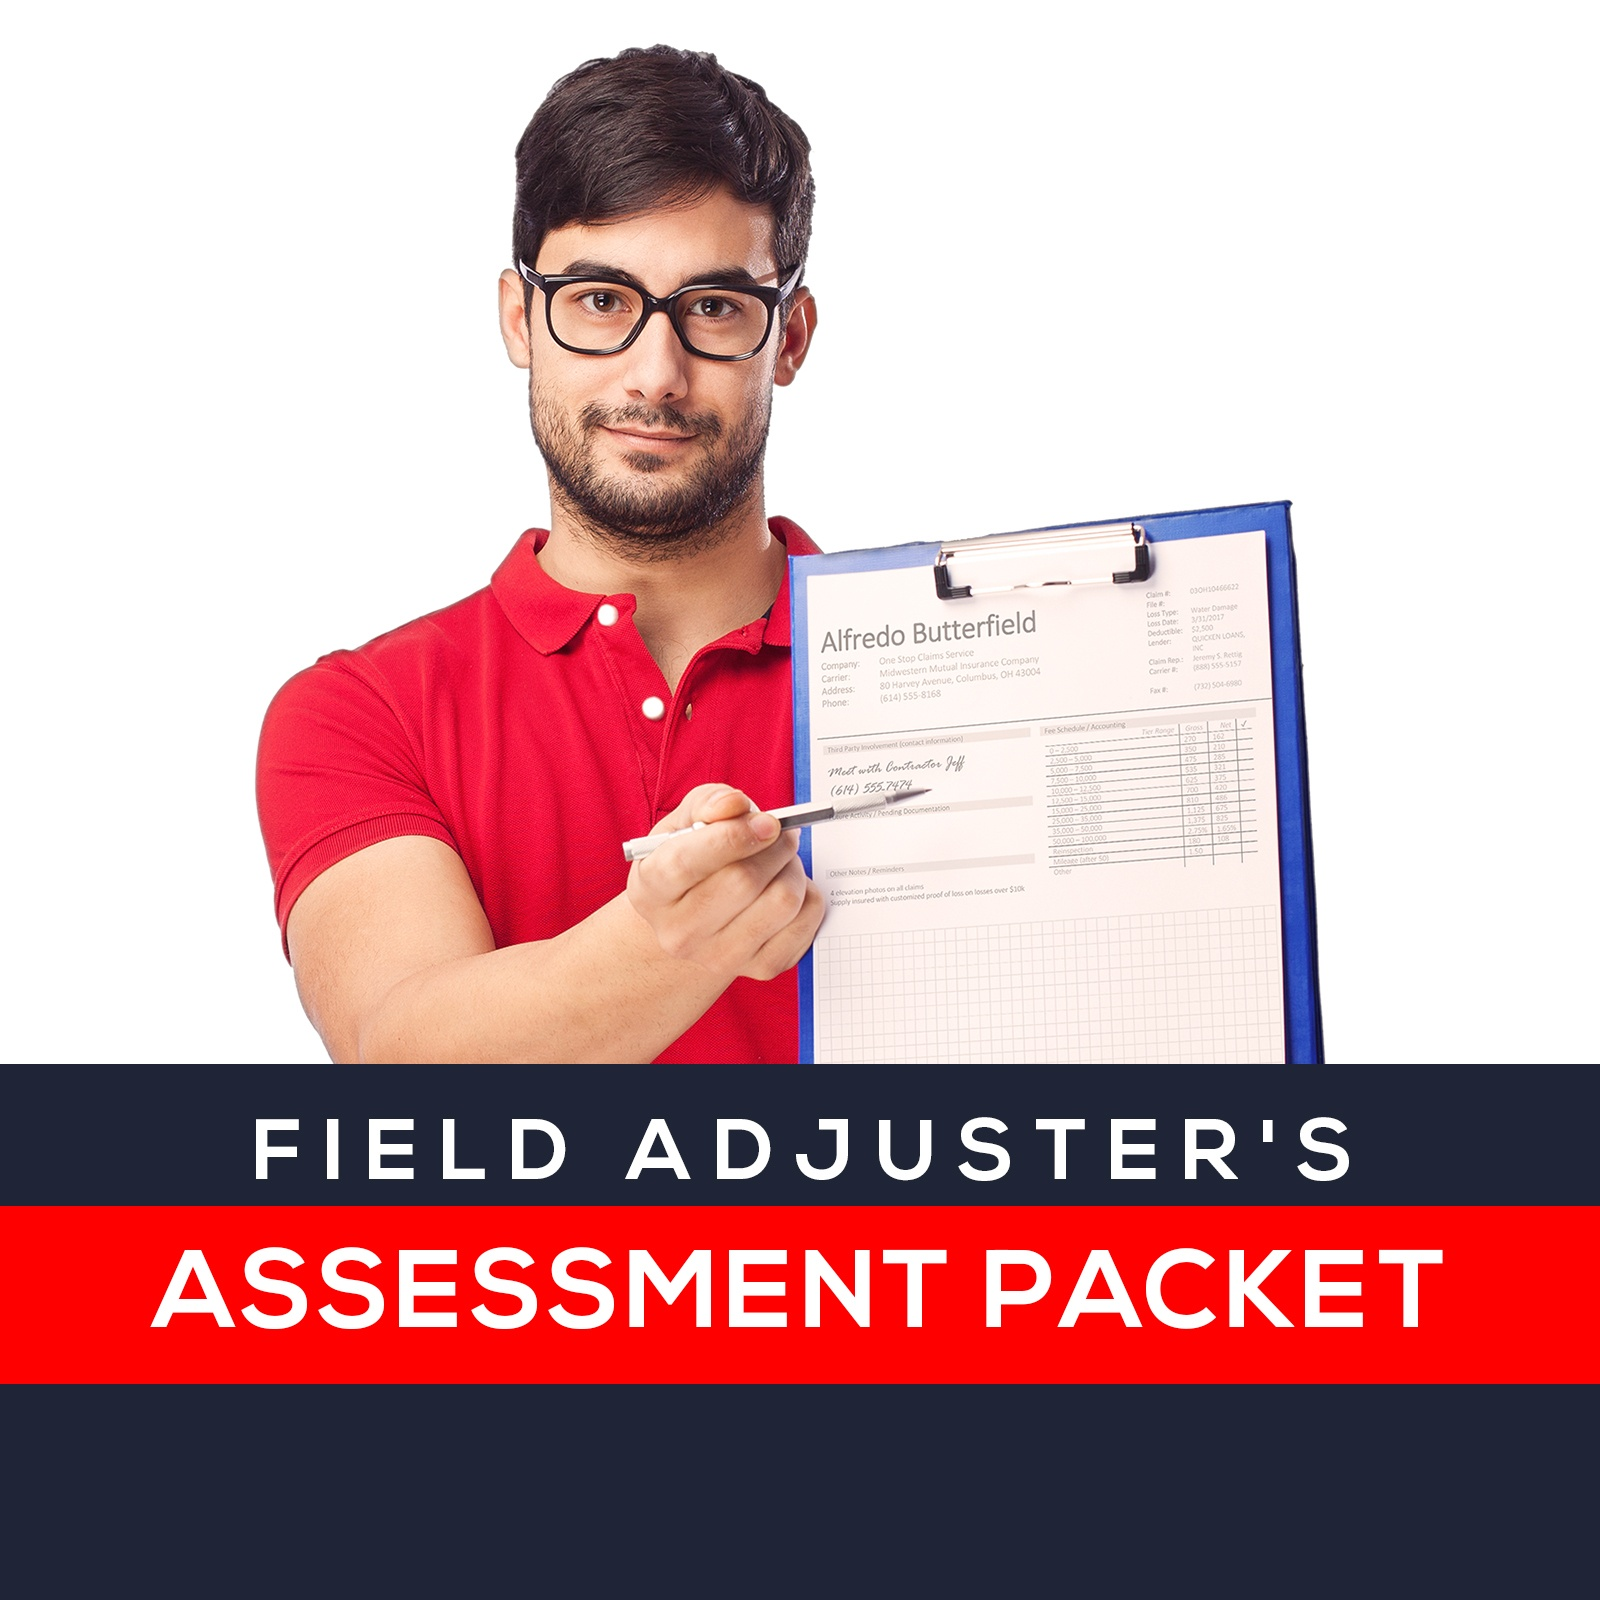 Field Adjuster Assessment Packet - Tools For Insurance ...